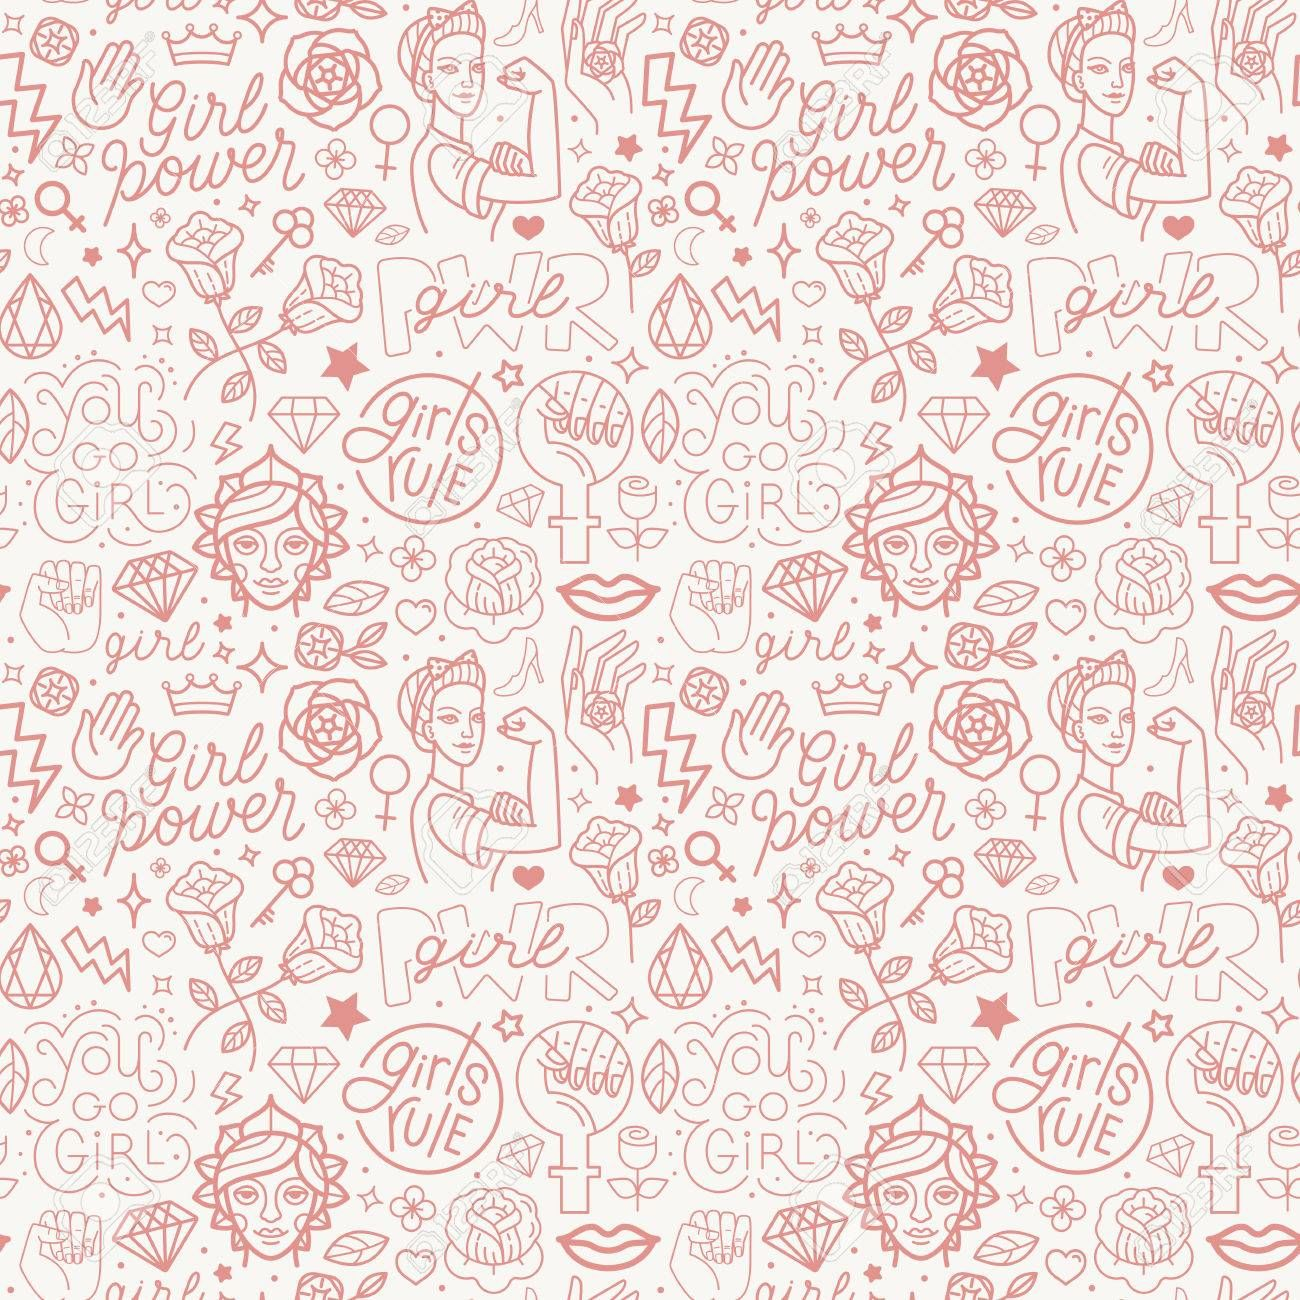 Vector seamless pattern with icon and hand-lettering phrases related to girl power and feminist movement - abstract background for prints, t-shirts, cards. , #spon, #lettering, #hand, #related, #phrases, #seamless